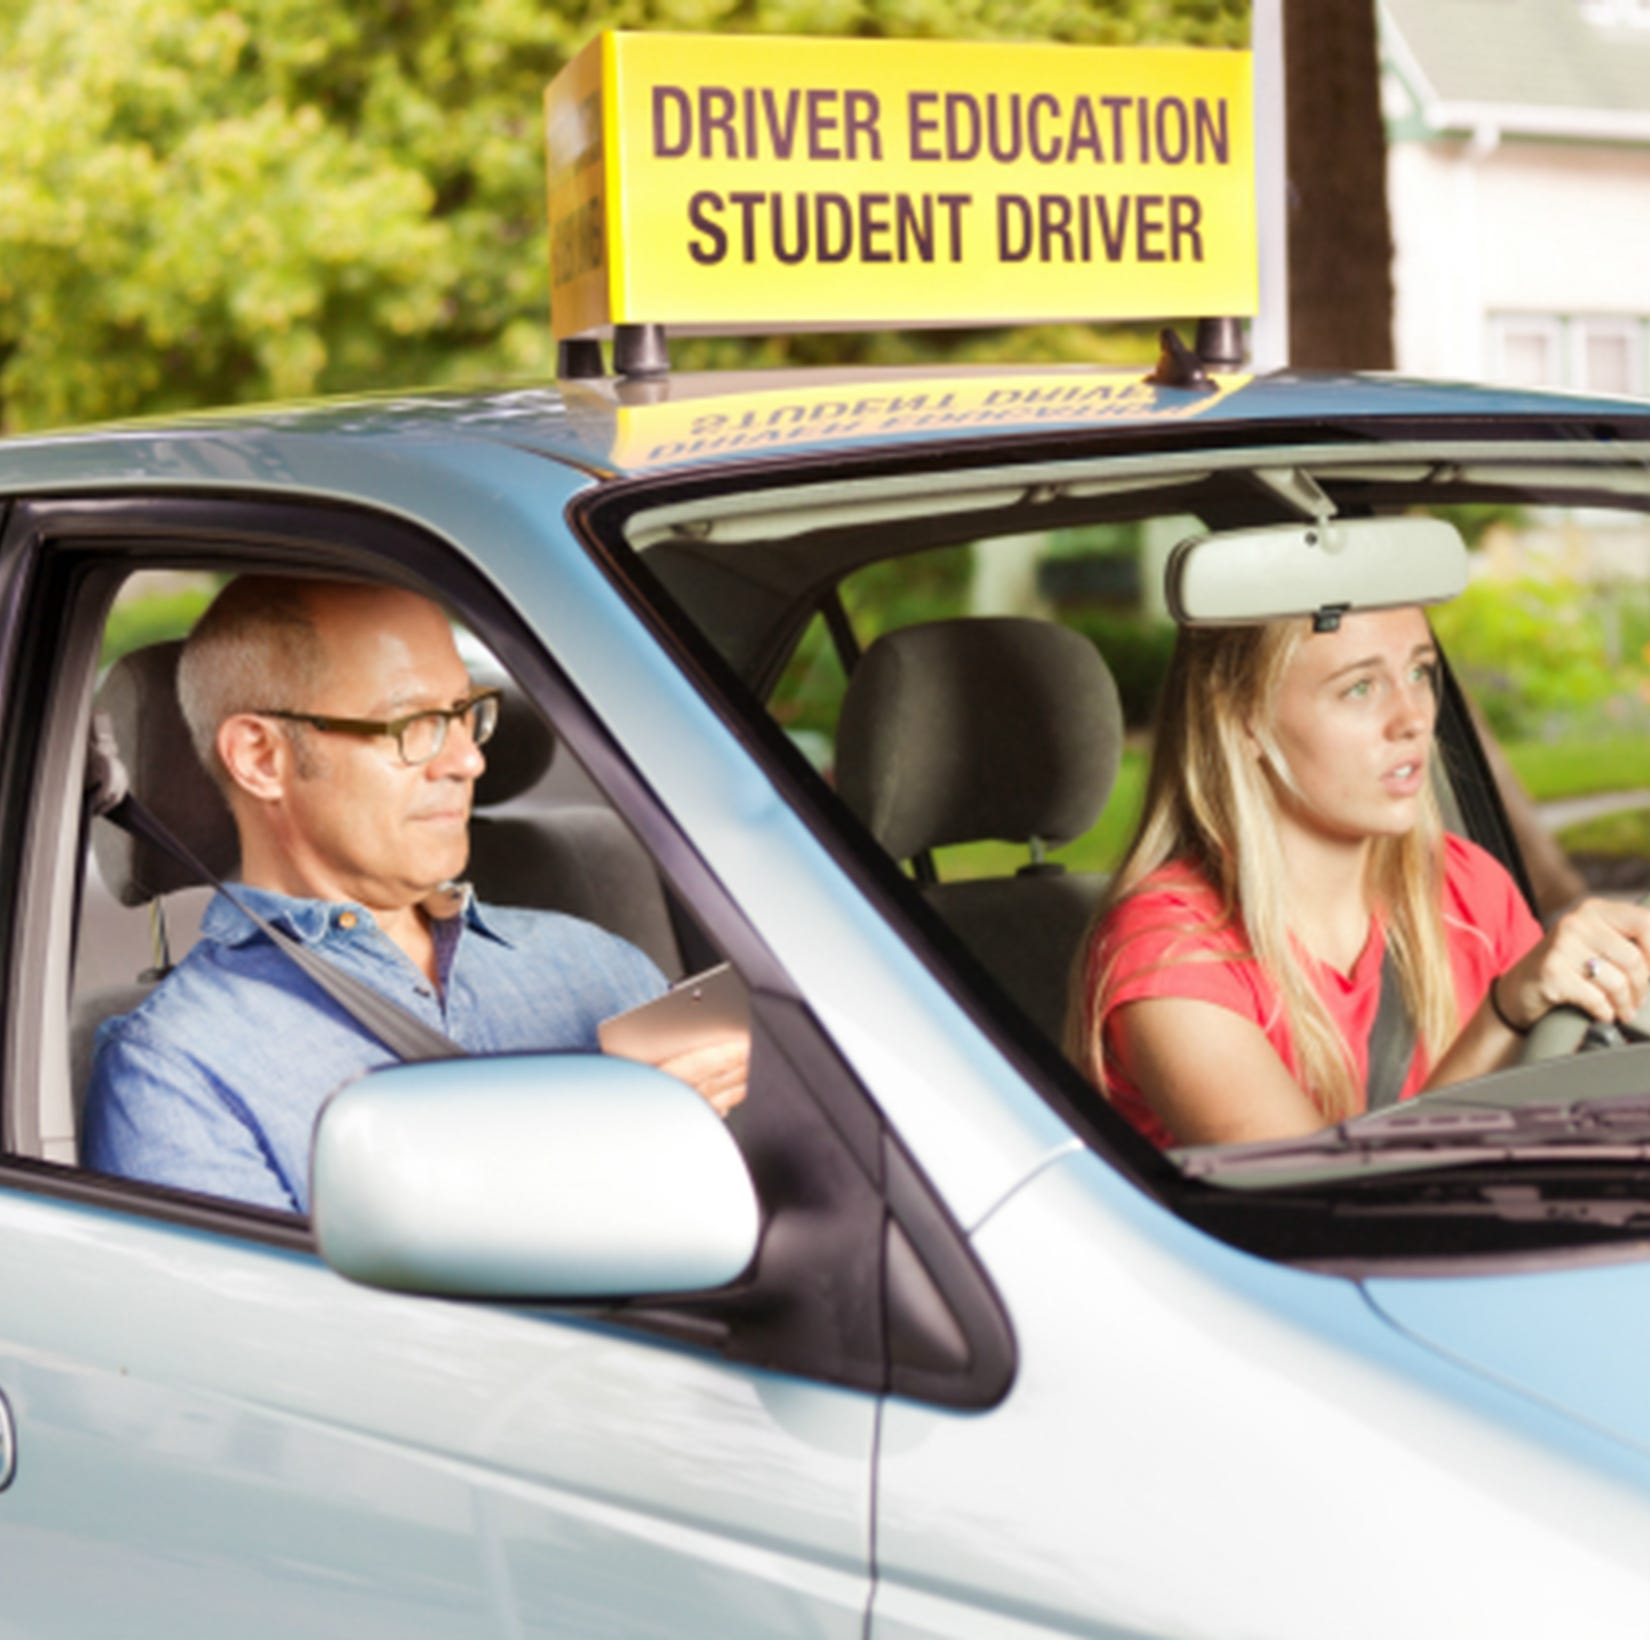 Dads, be the warning sign your student driver needs